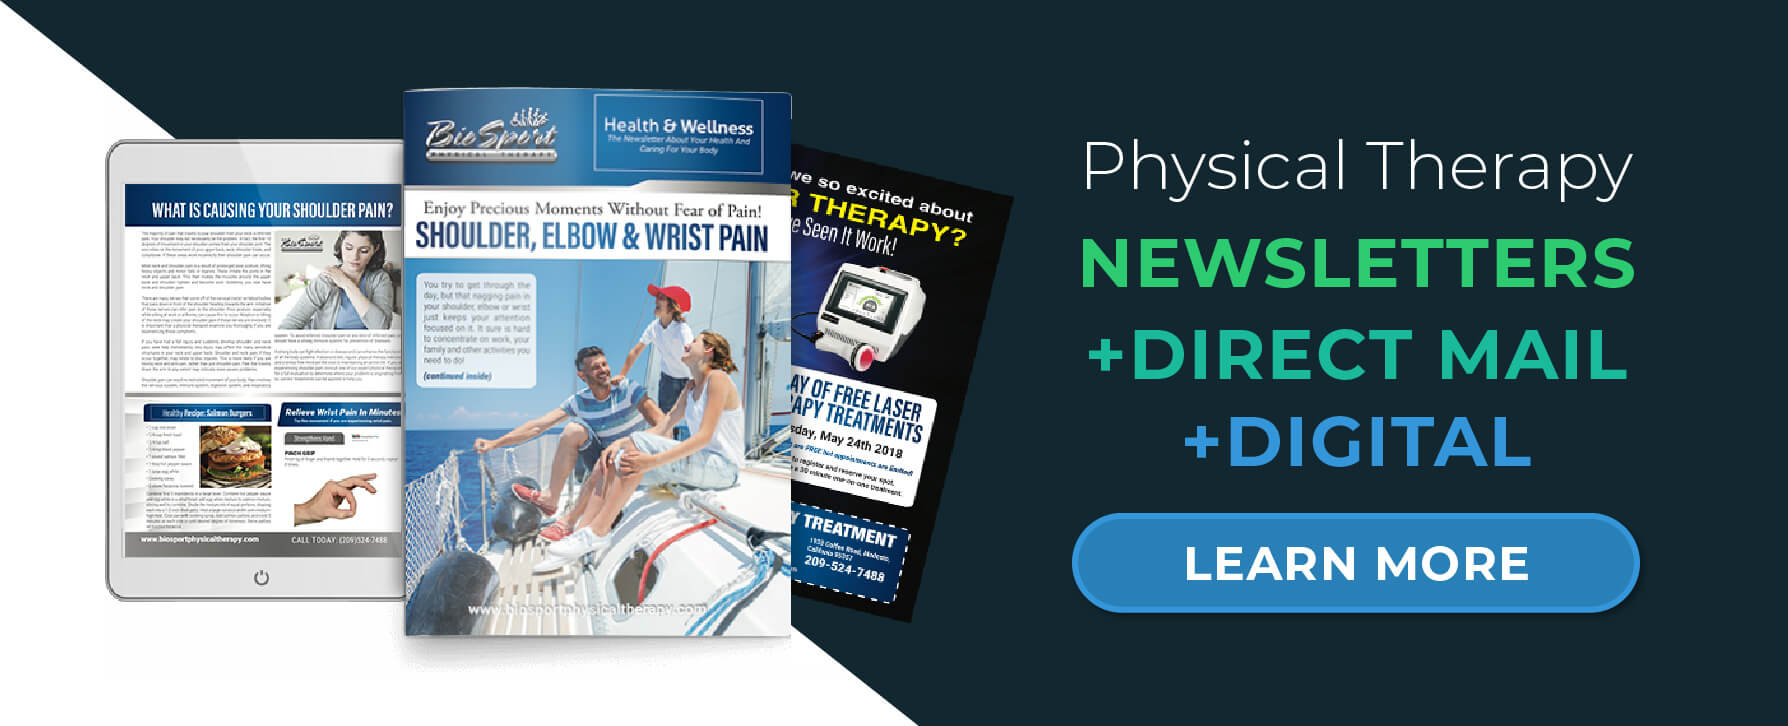 Explore Physical Therapy Newsletter Services